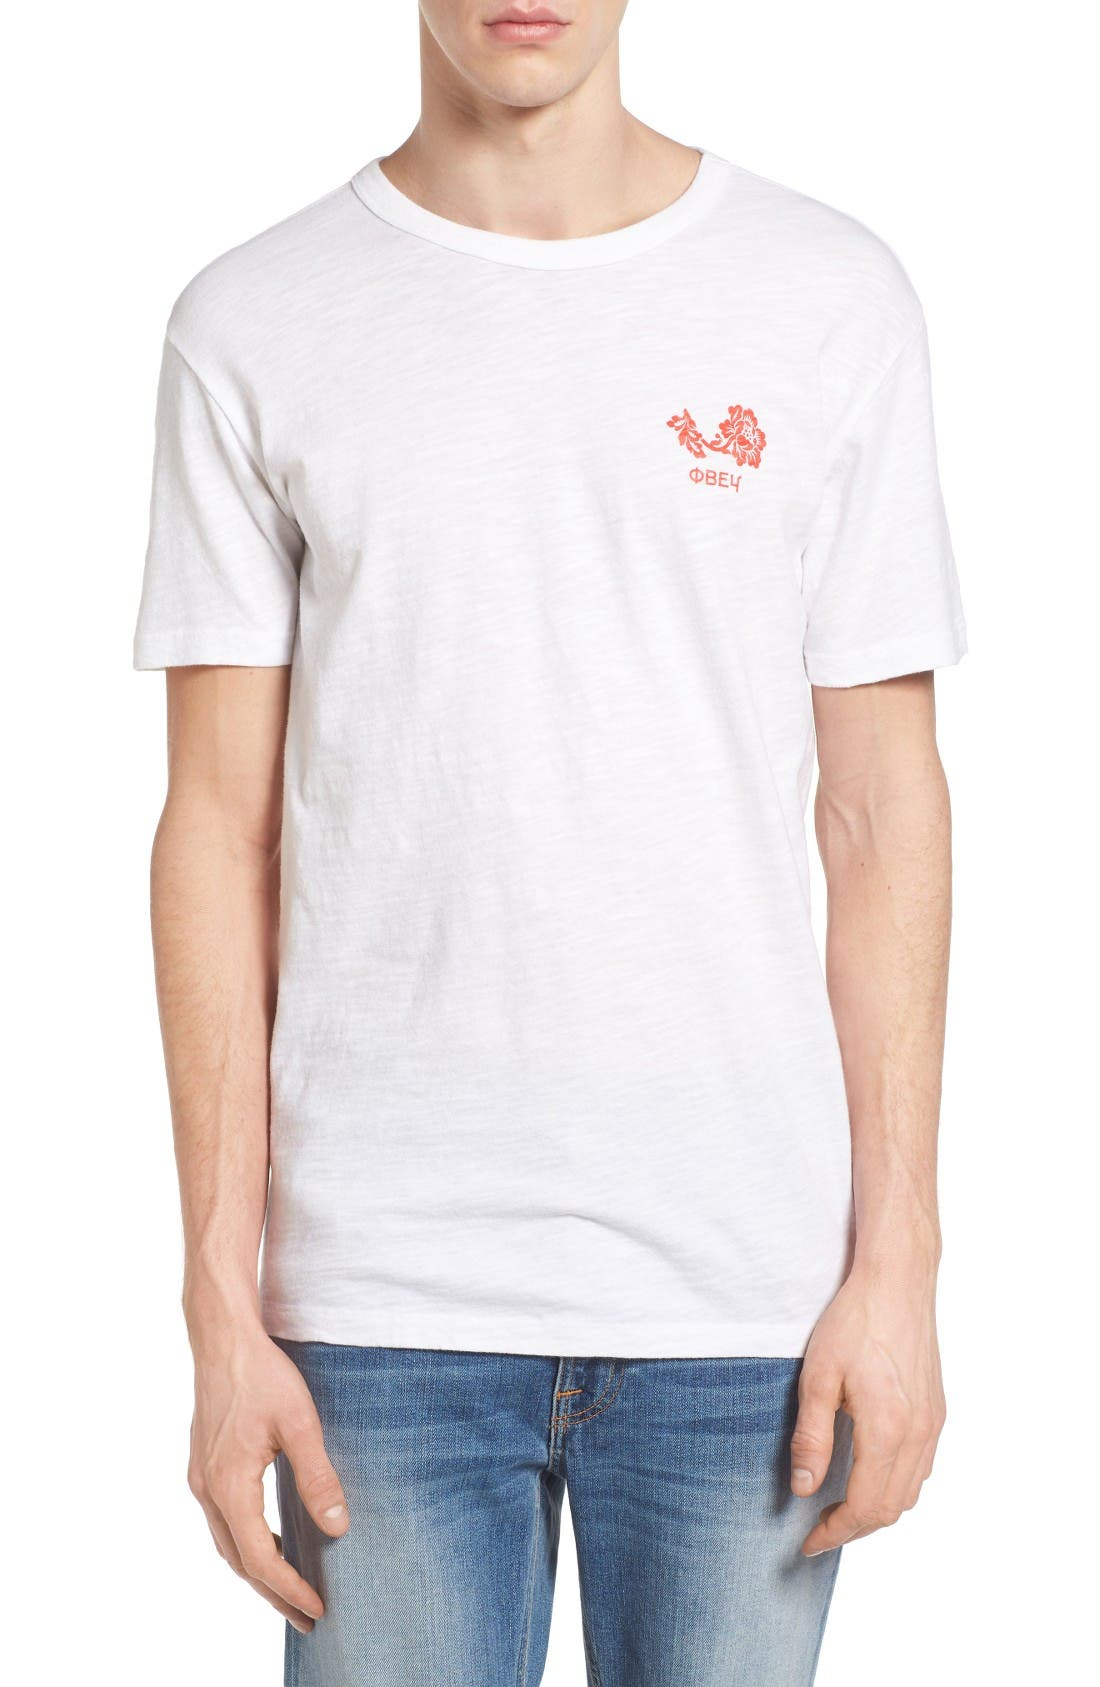 OBEY Flower Graphic T-Shirt